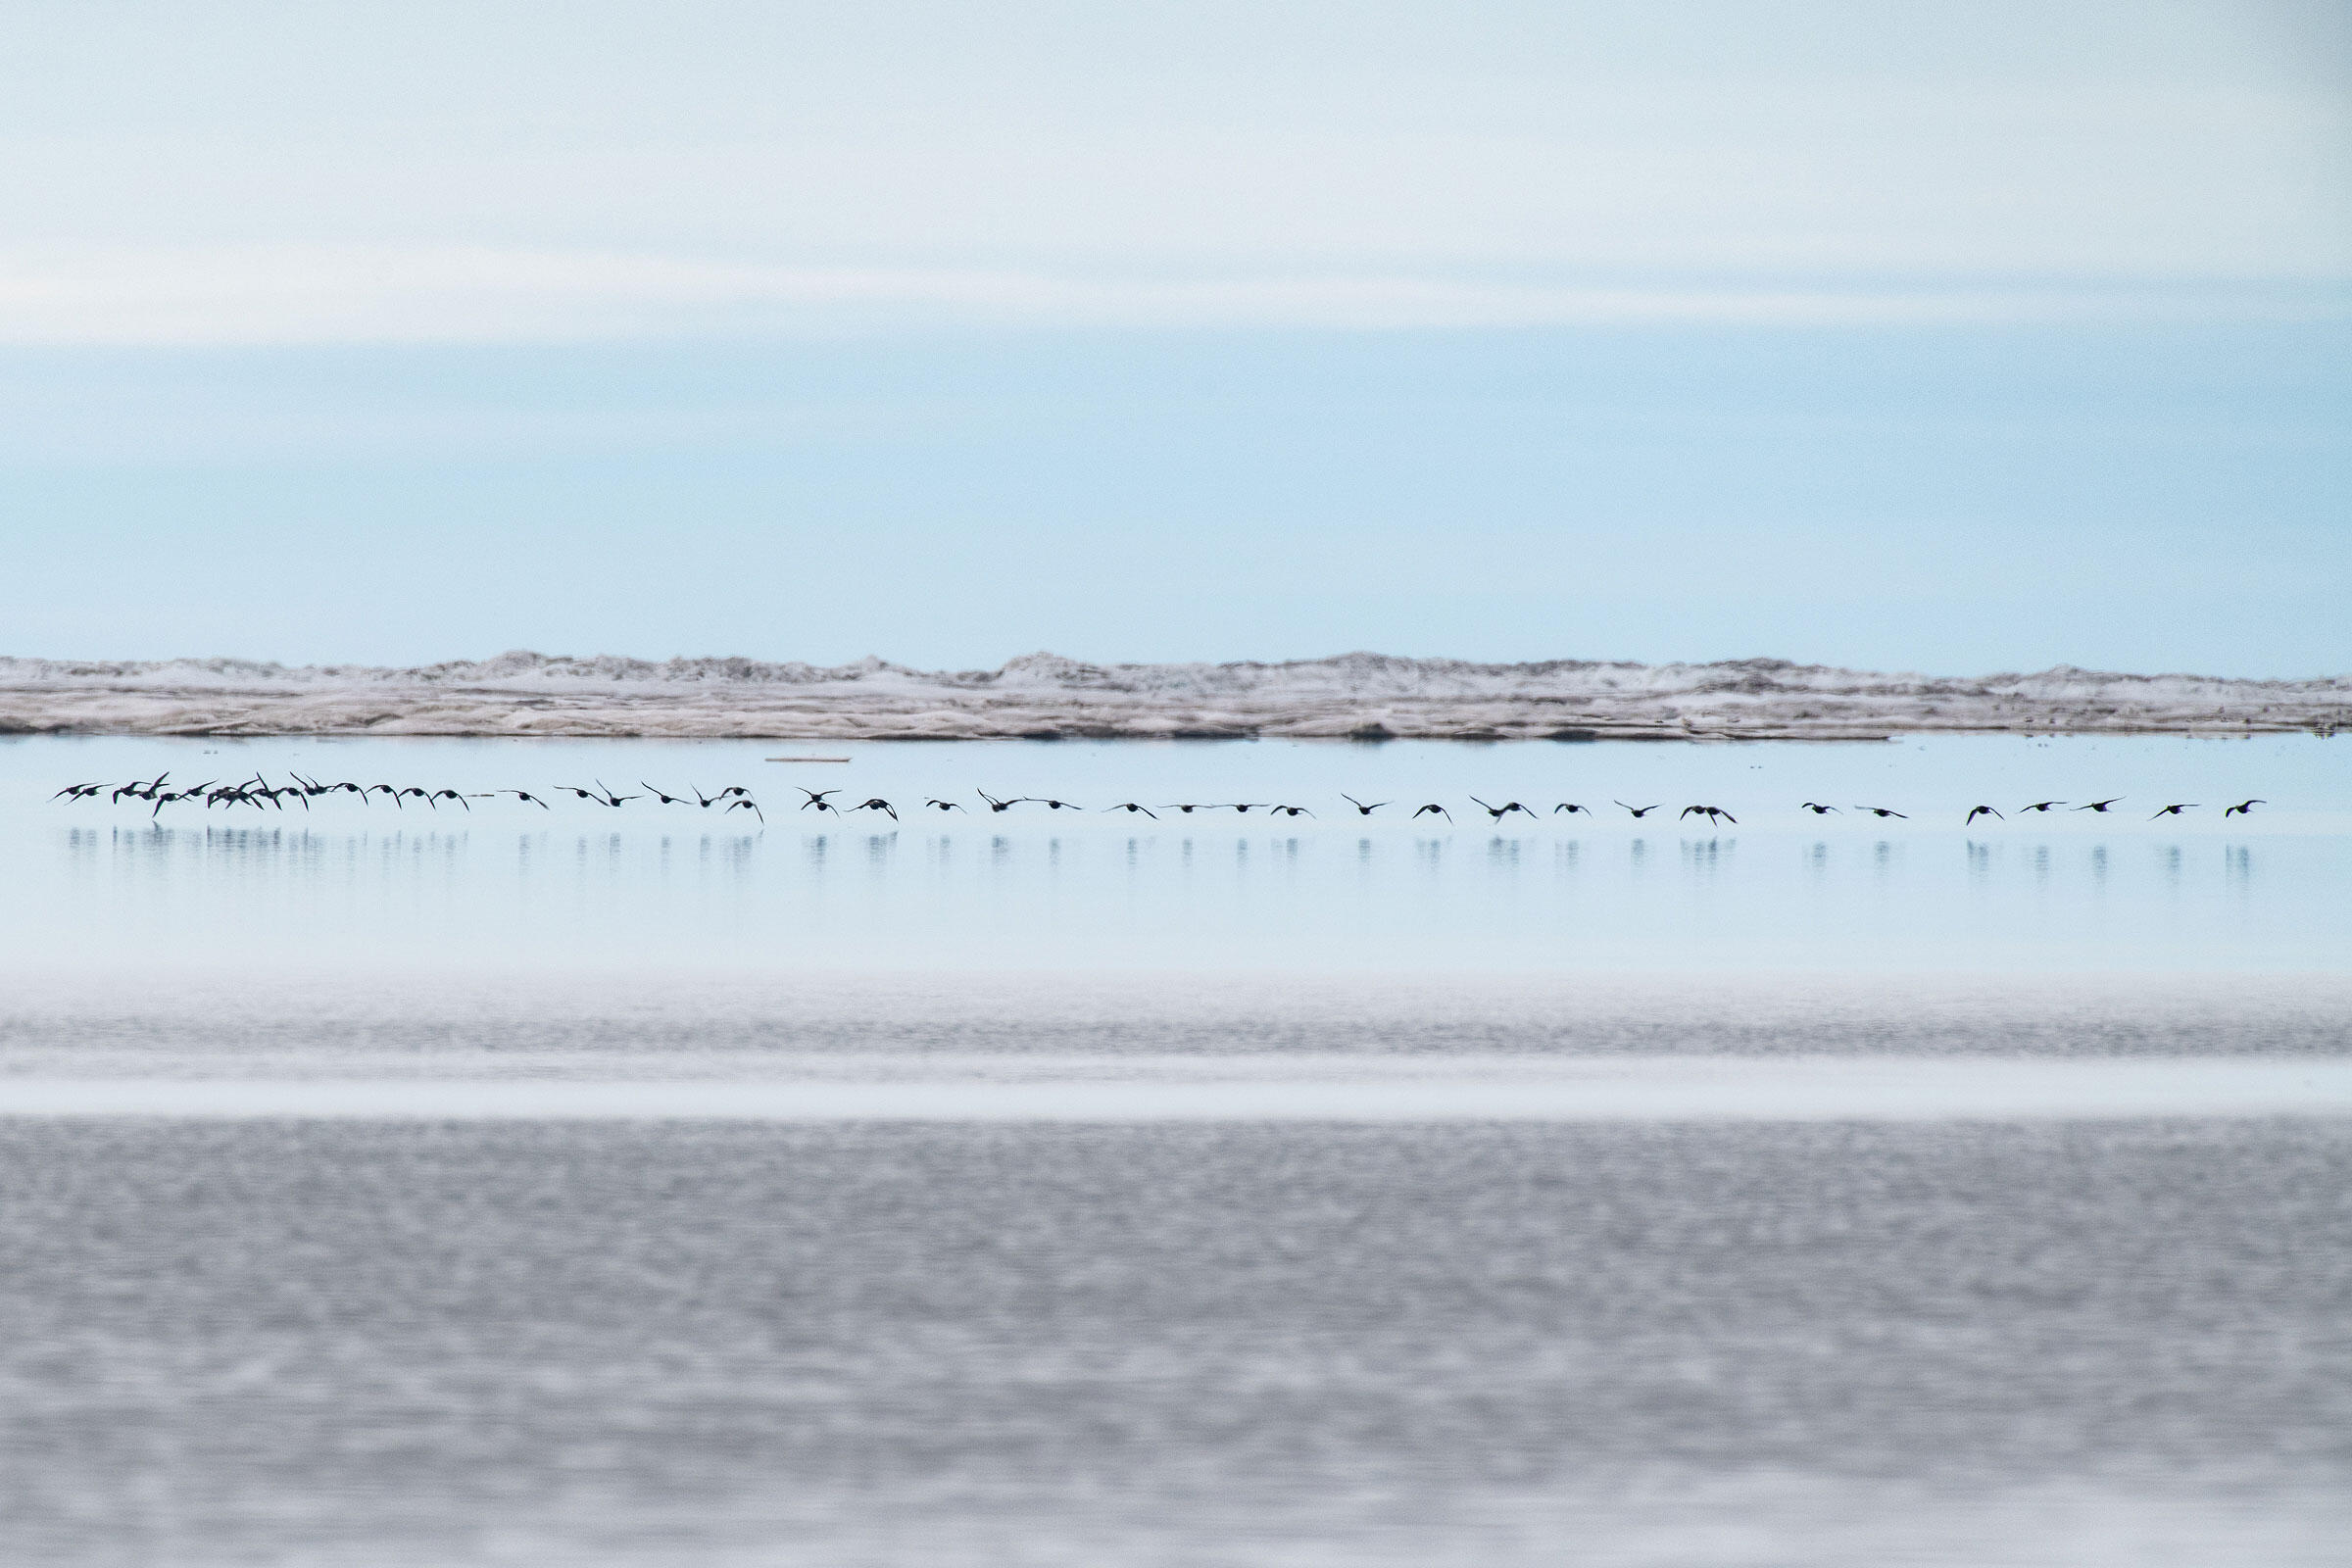 A flock of Long-tailed Ducks skim along the ocean's edge. Peter Mather